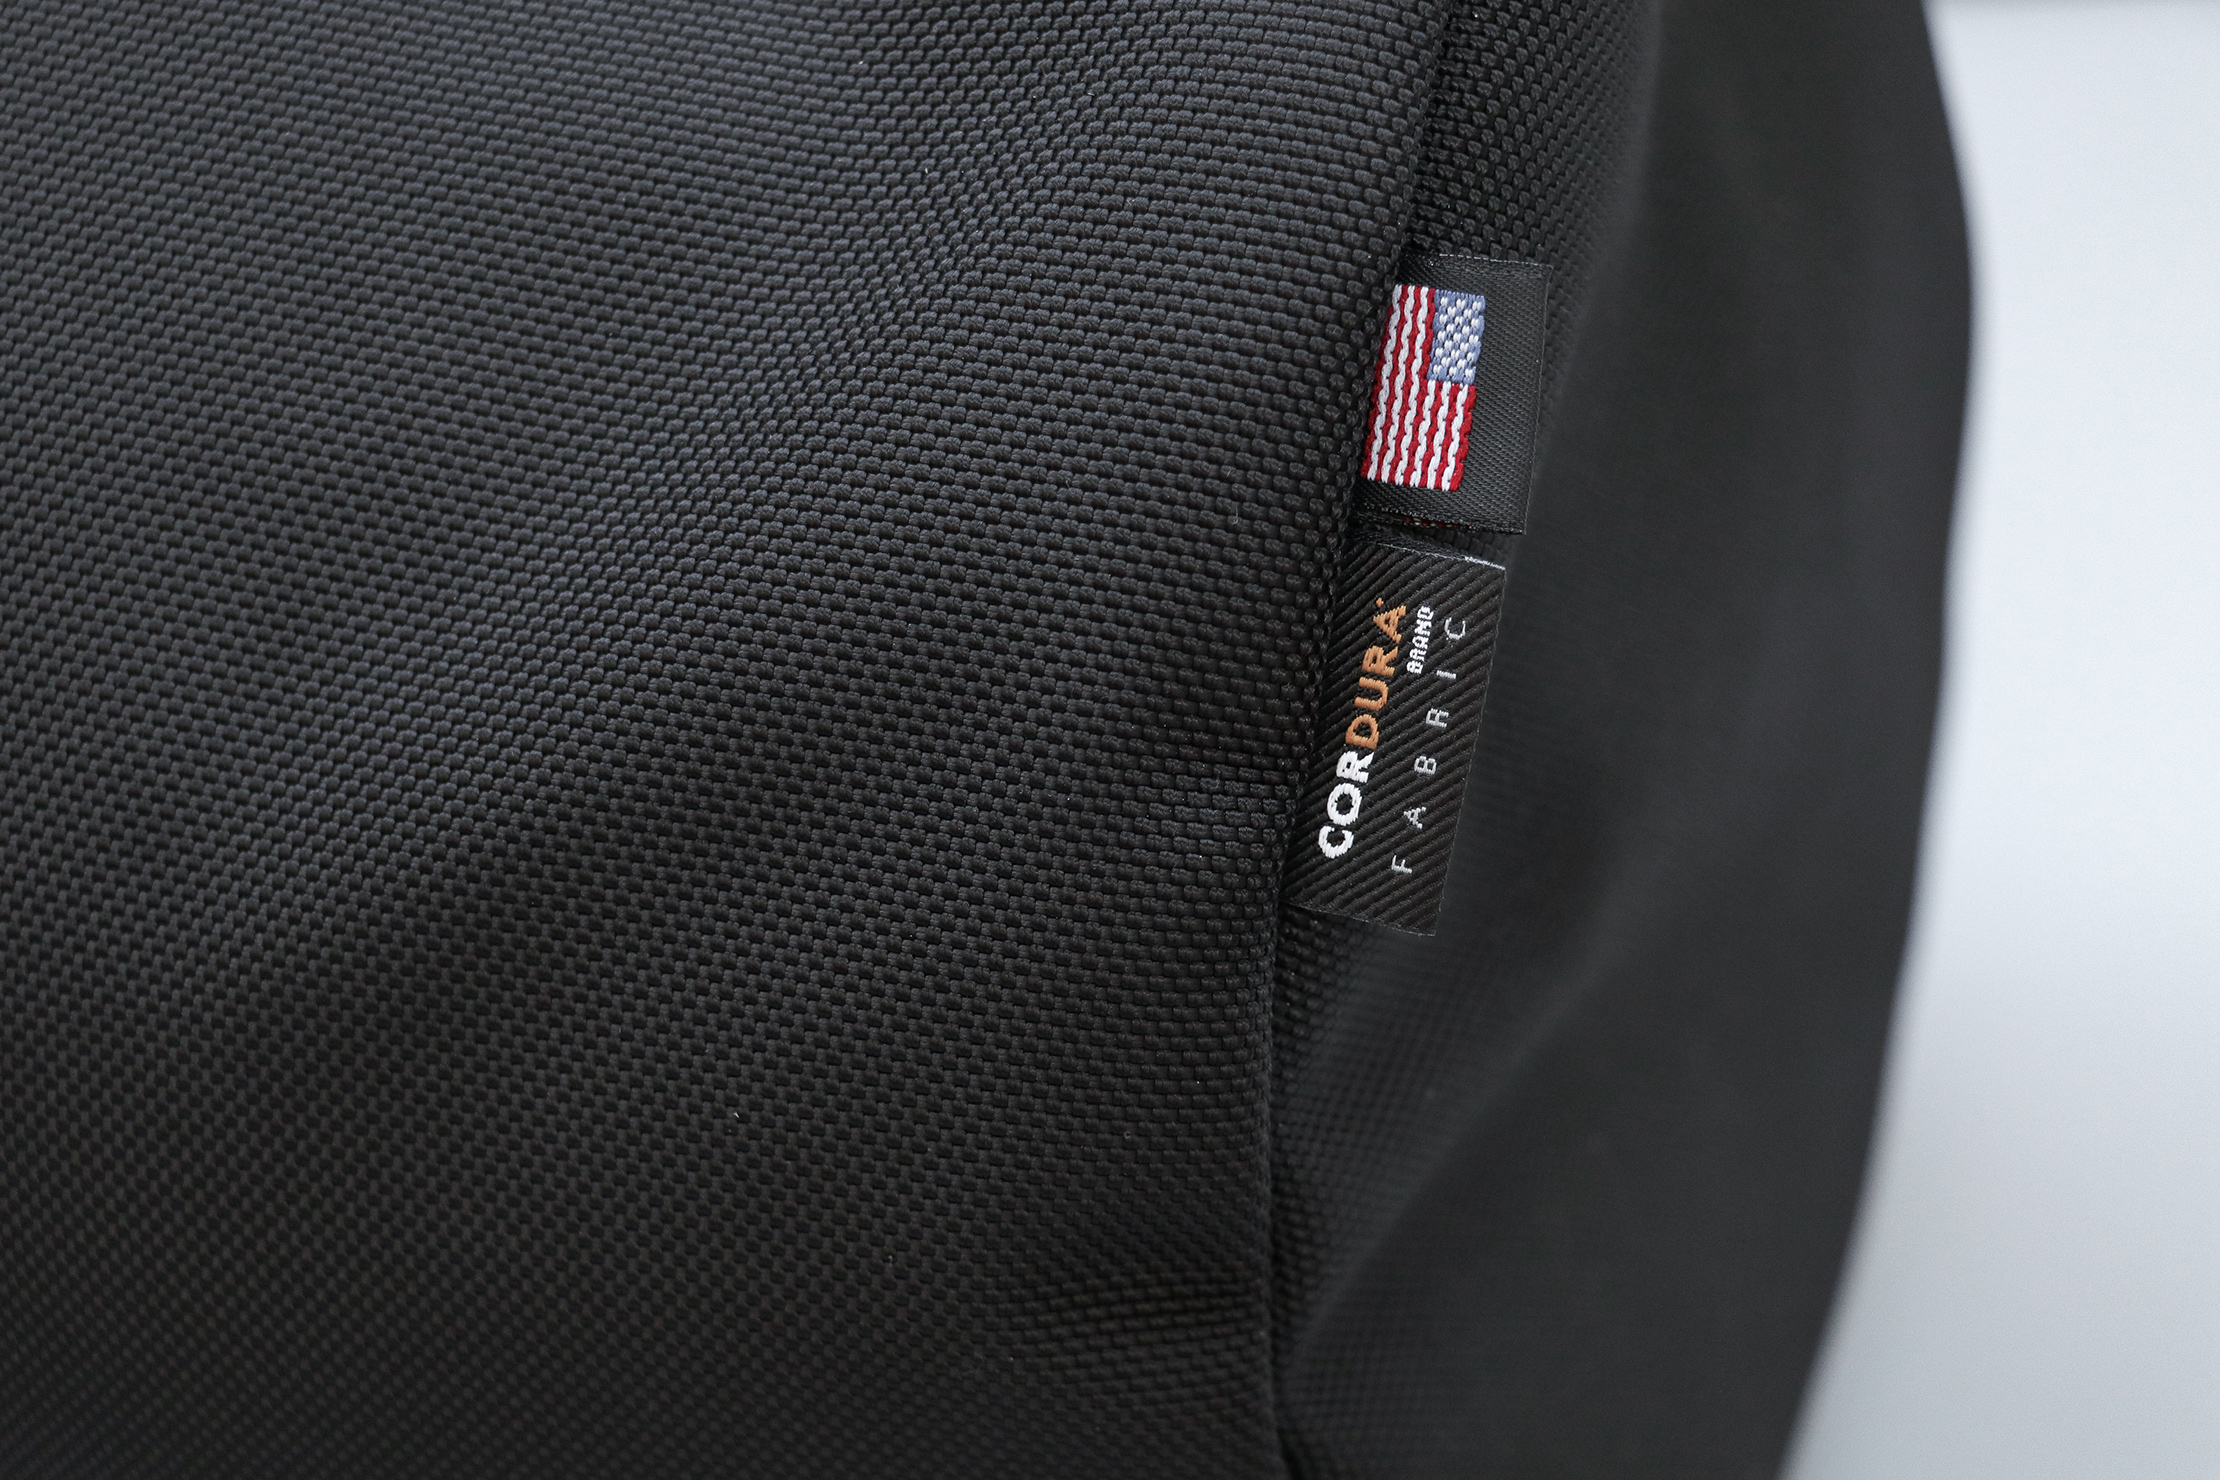 Topo Designs Classic Duffel Fabric And Tags